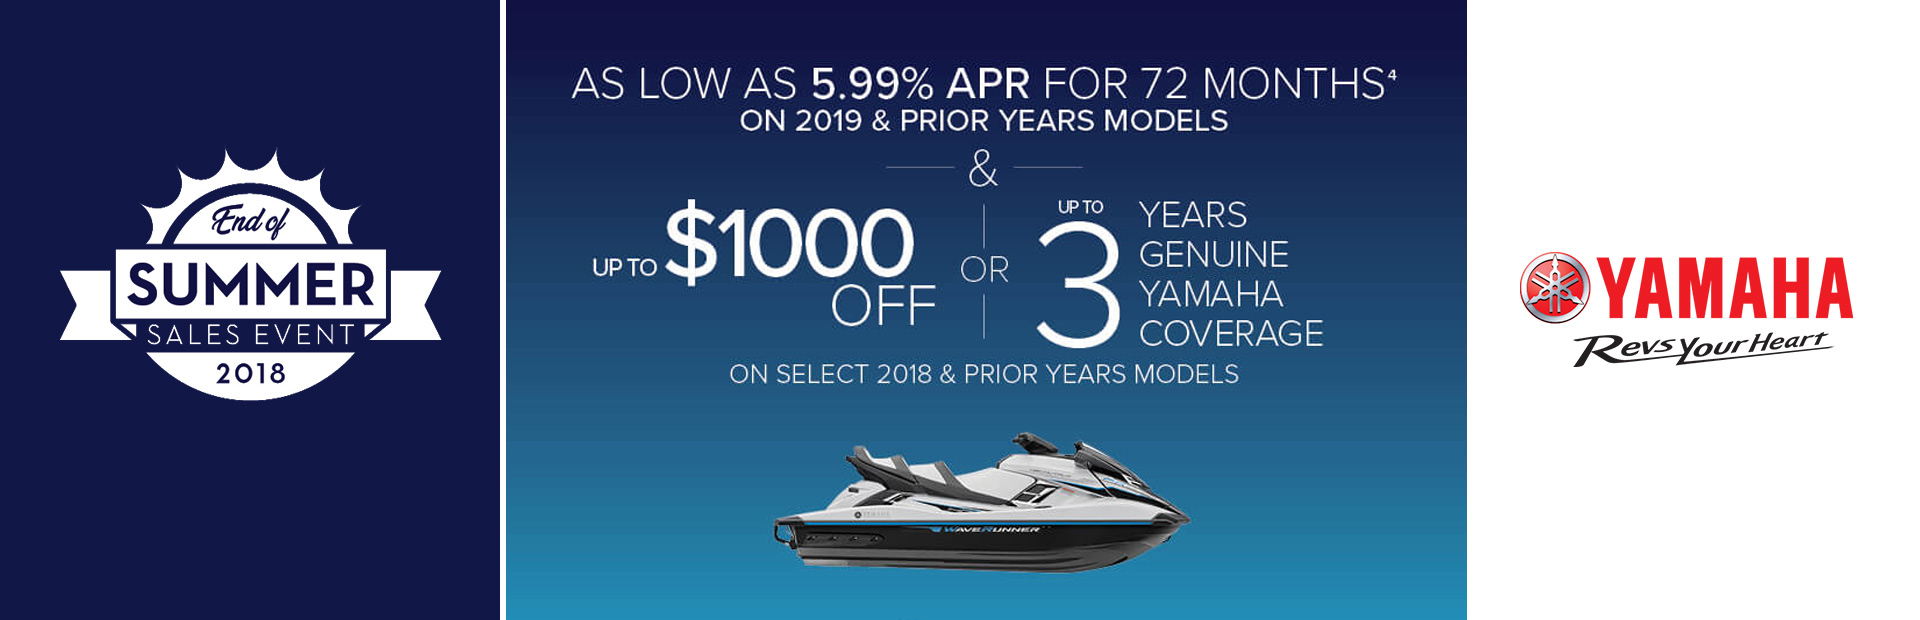 Yamaha: As Low As 5.99% APR For 72 Months On 2019 & Prior